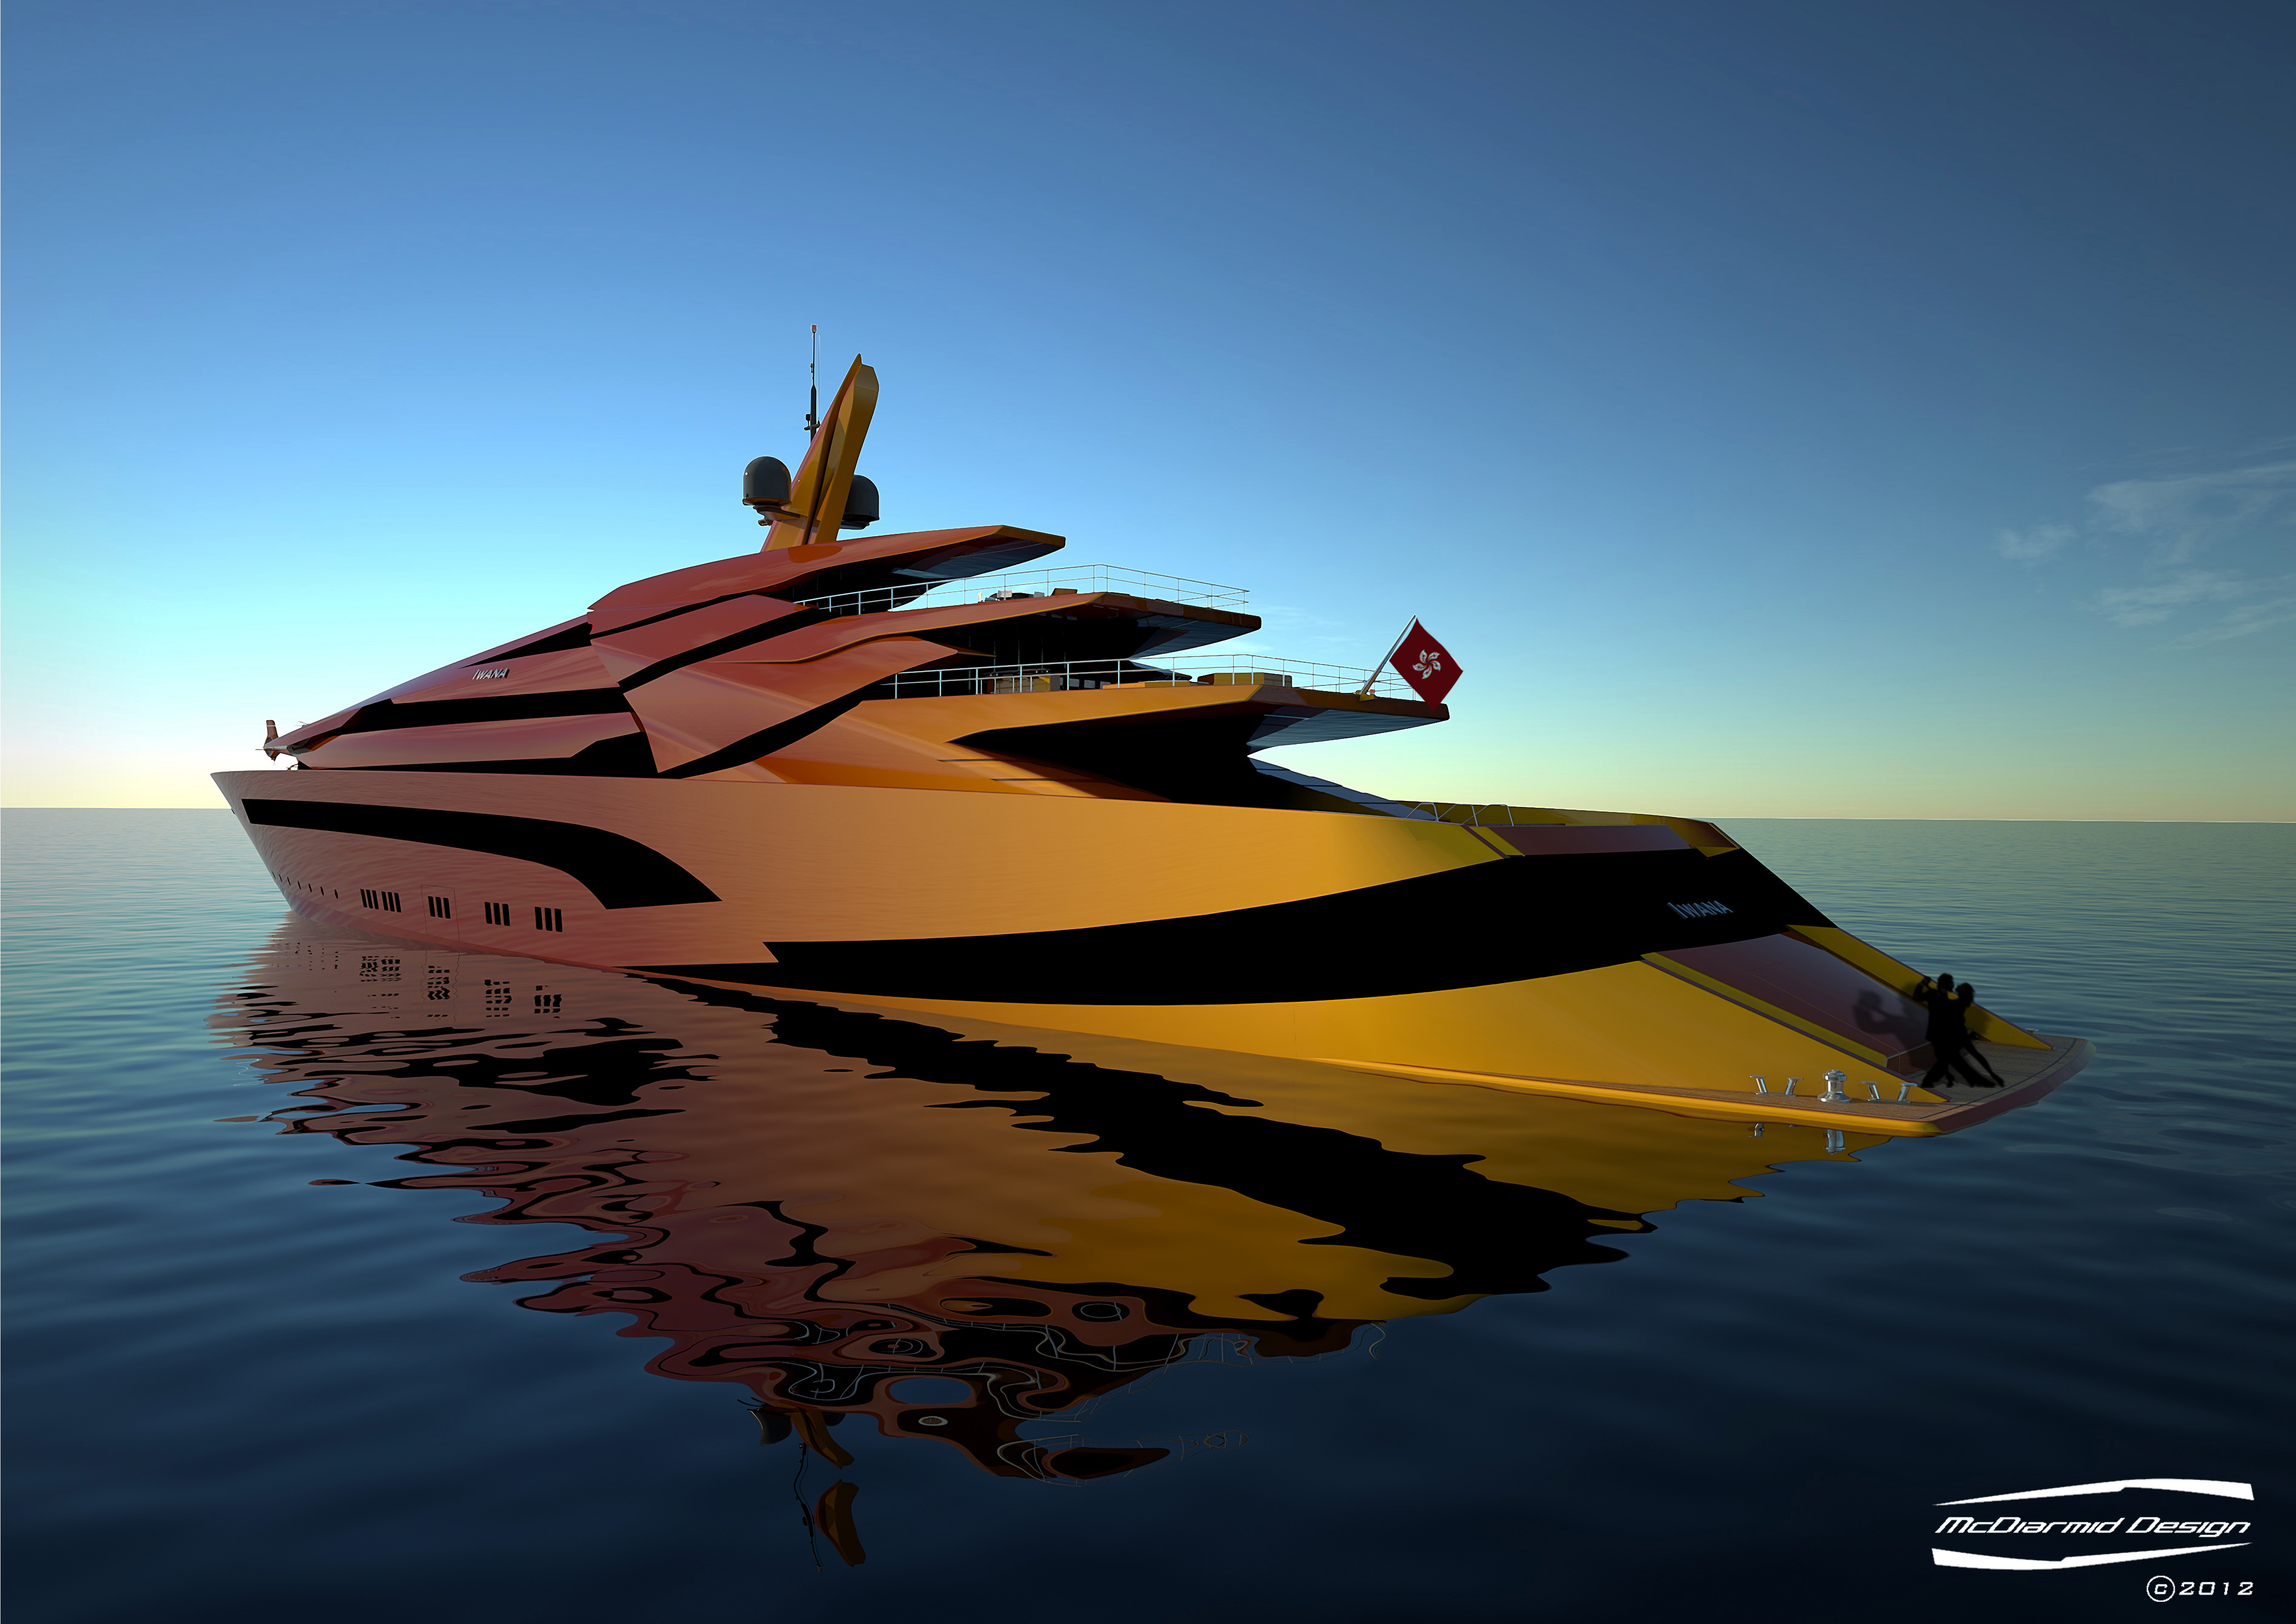 McDiarmid designed 87m luxury yacht Iwana - rear view